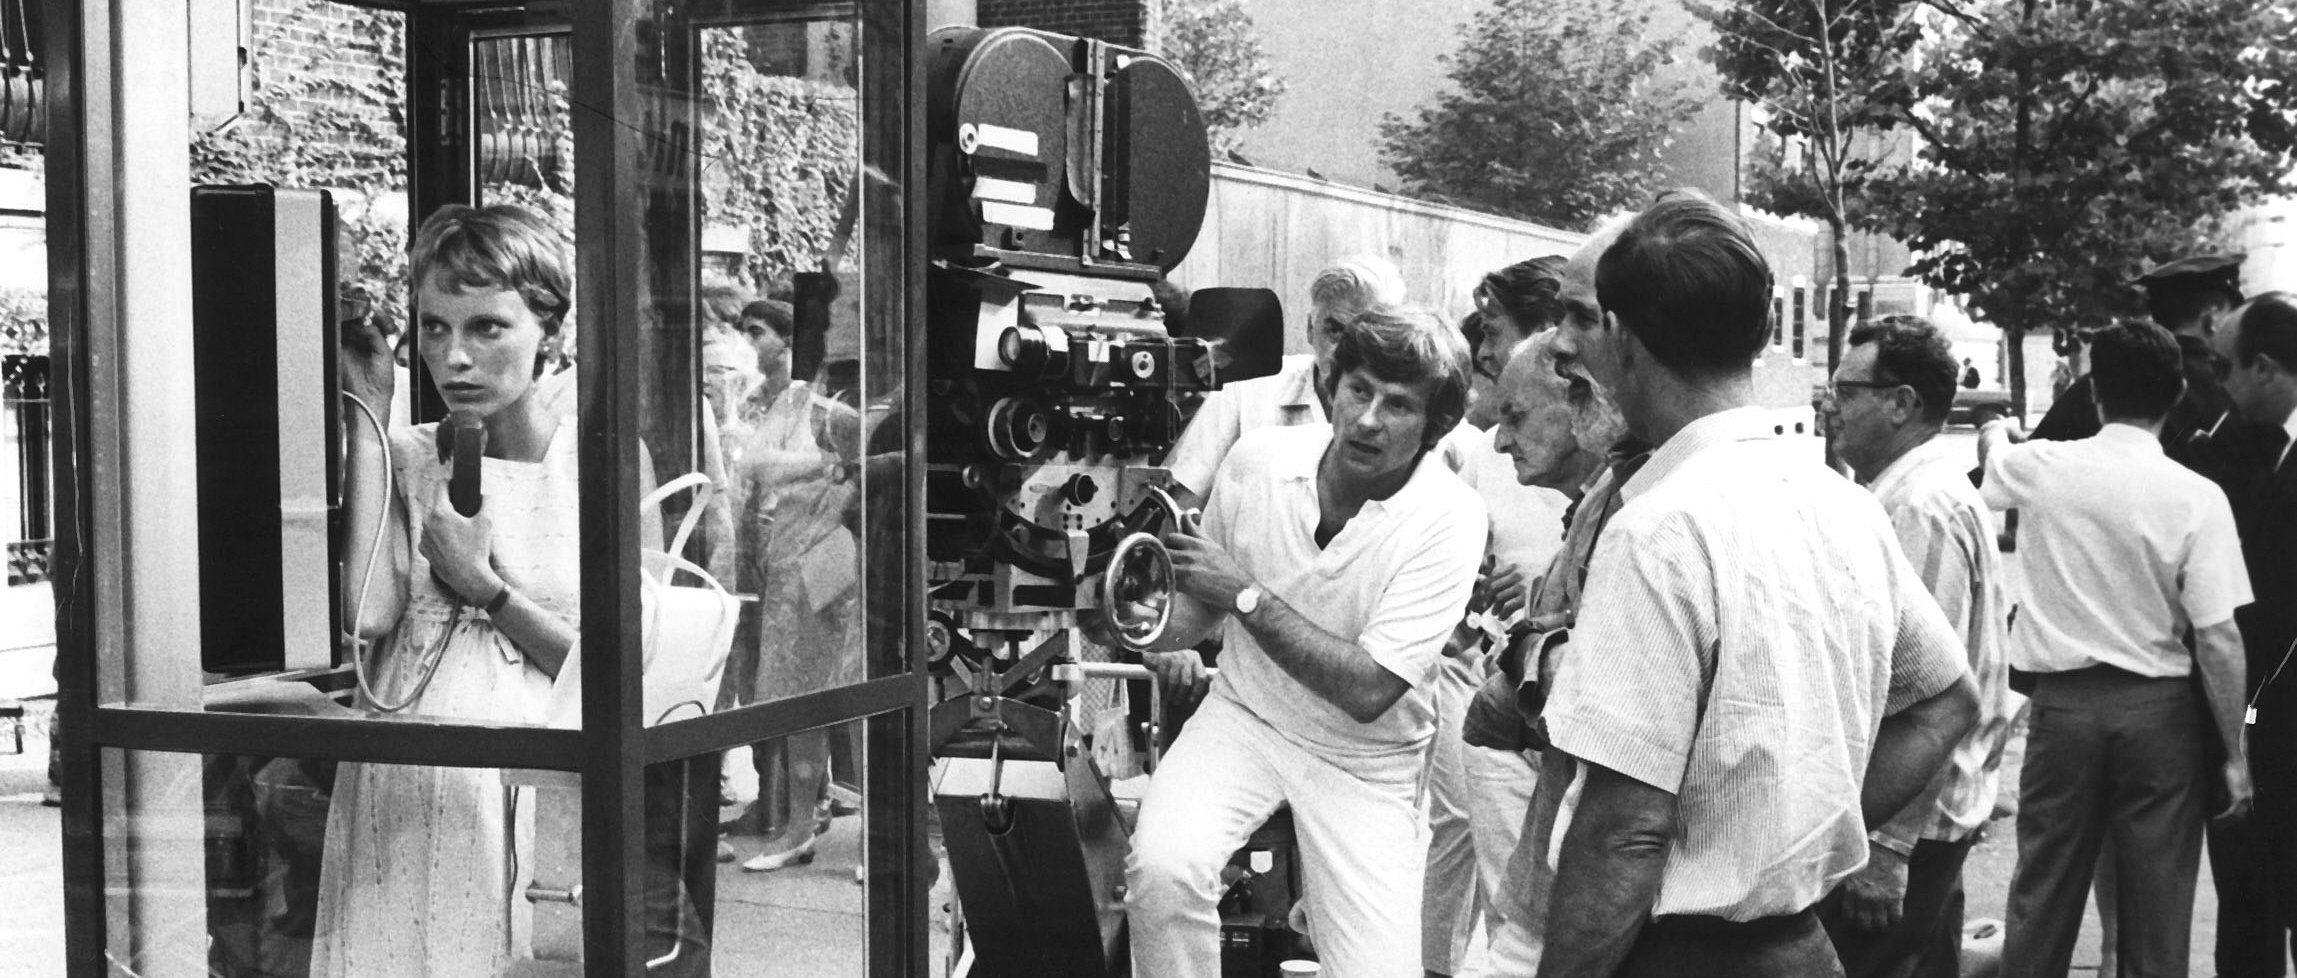 Beyond The Frame: Rosemary's Baby - The American Society of Cinematographers